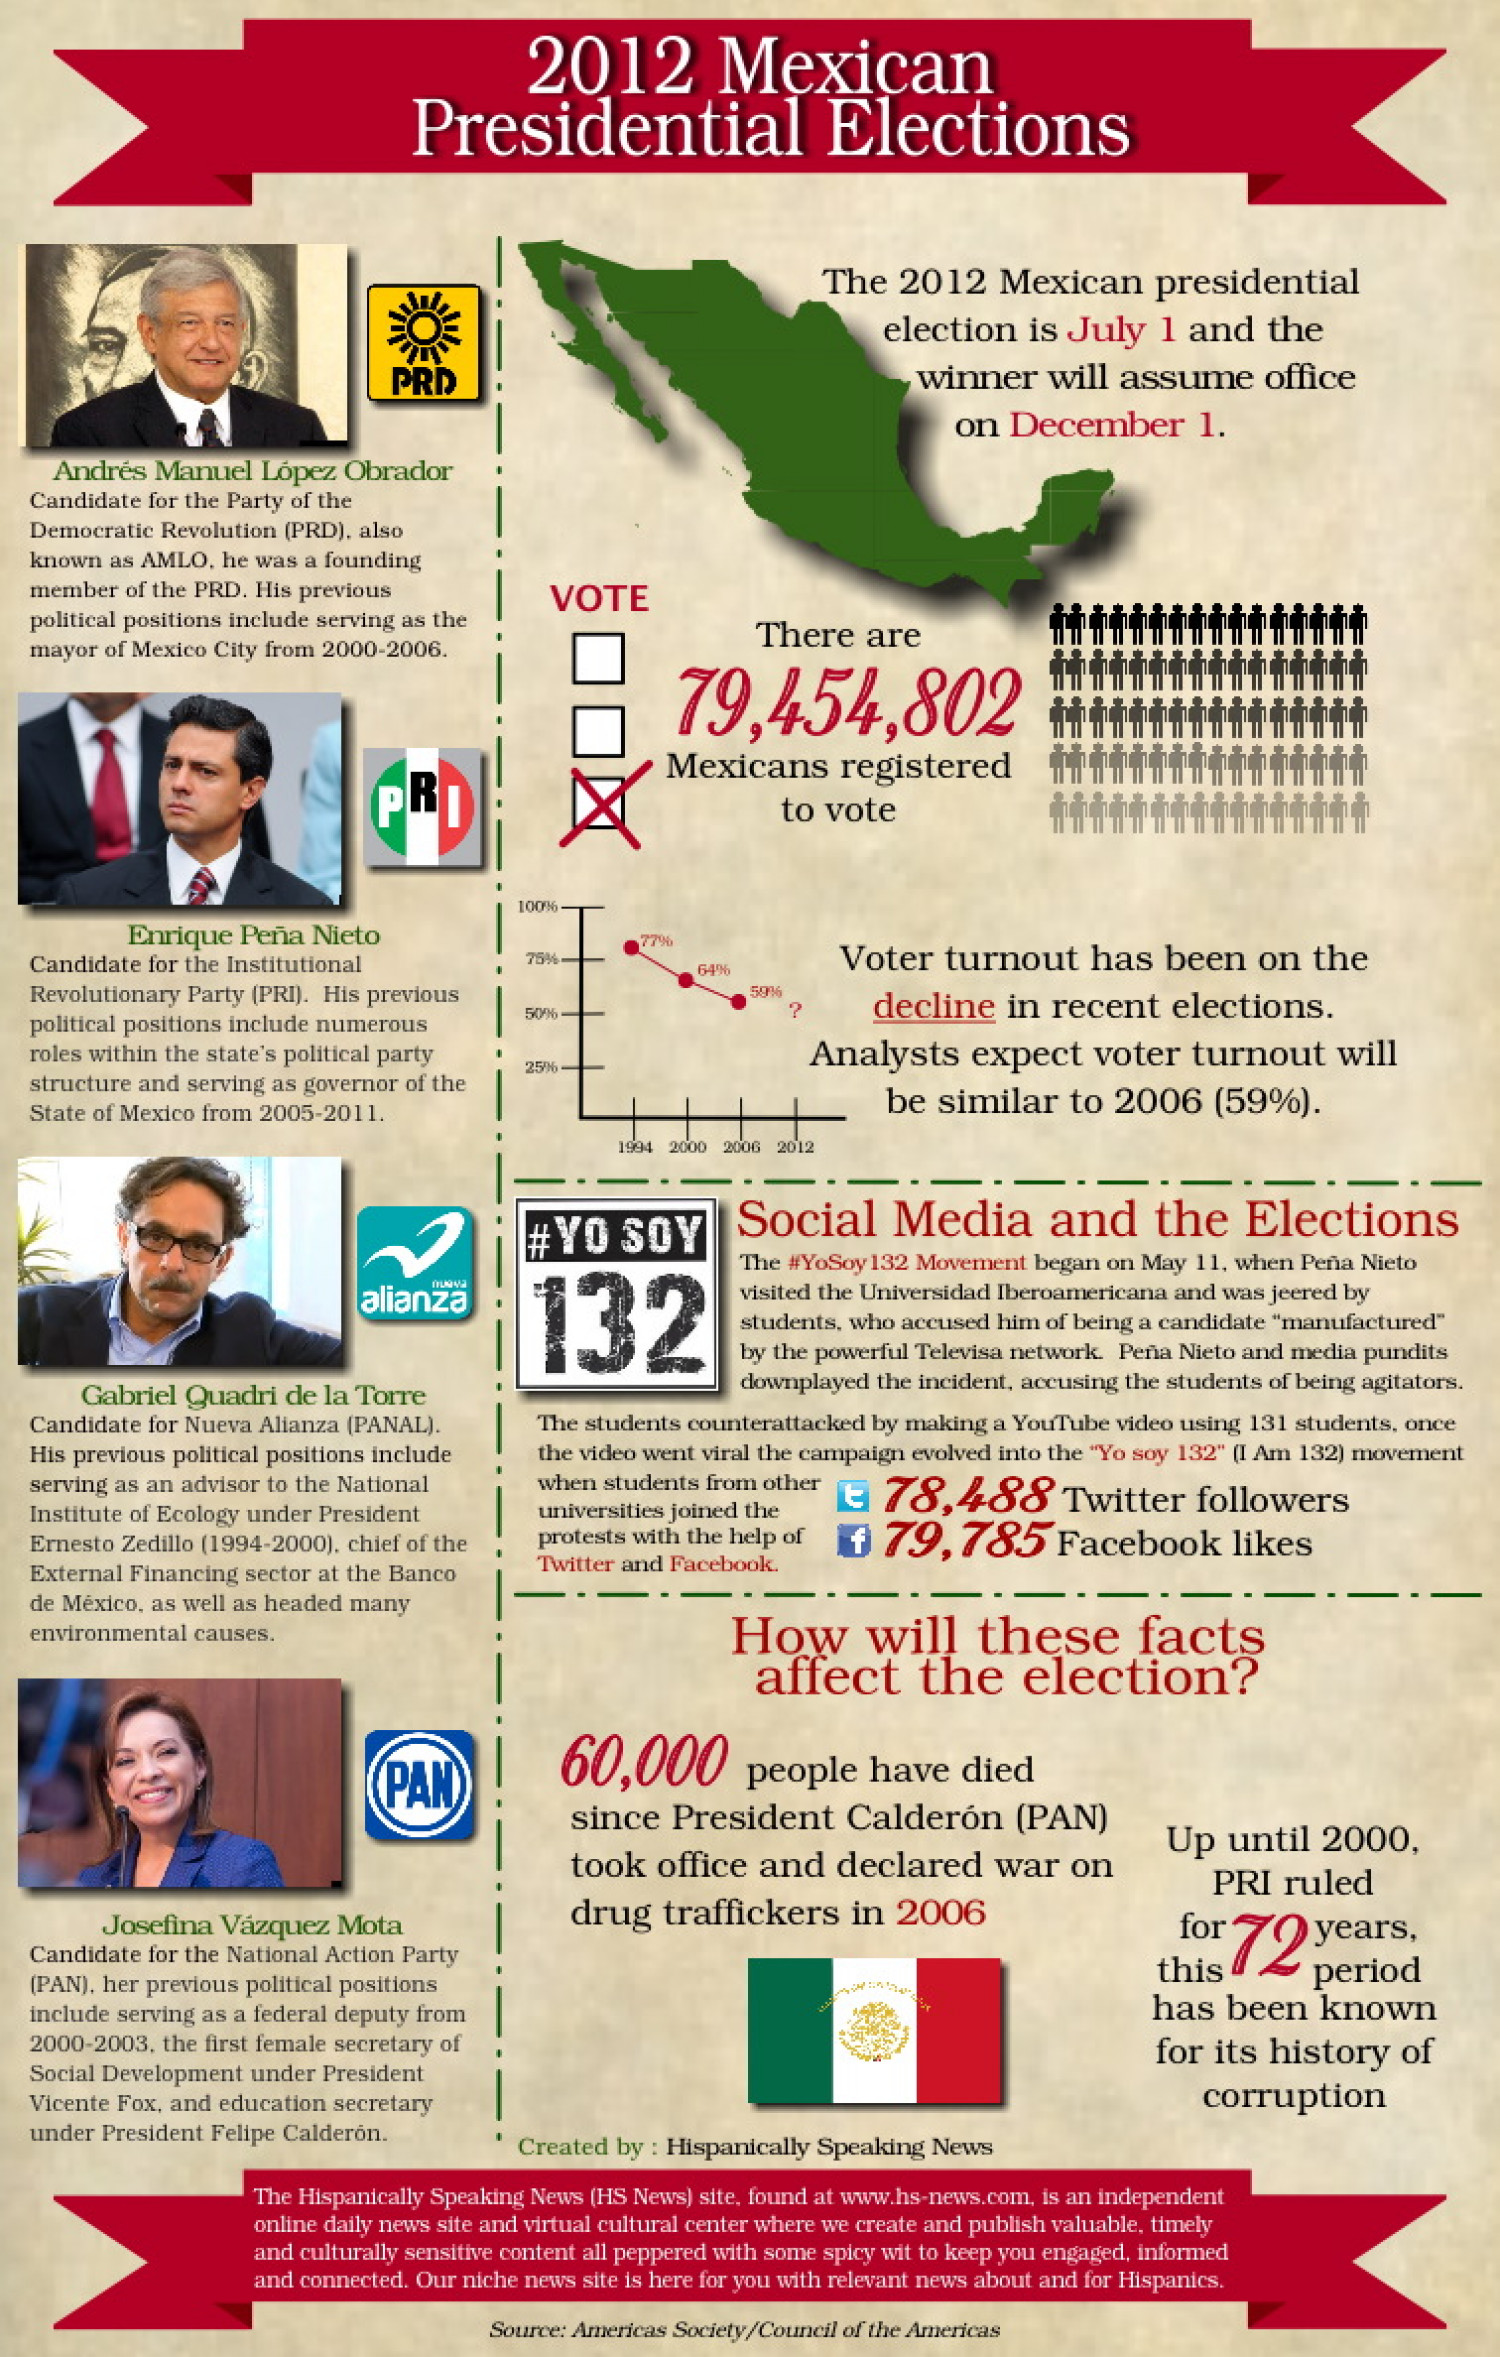 2012 Mexican Presidential Elections Infographic